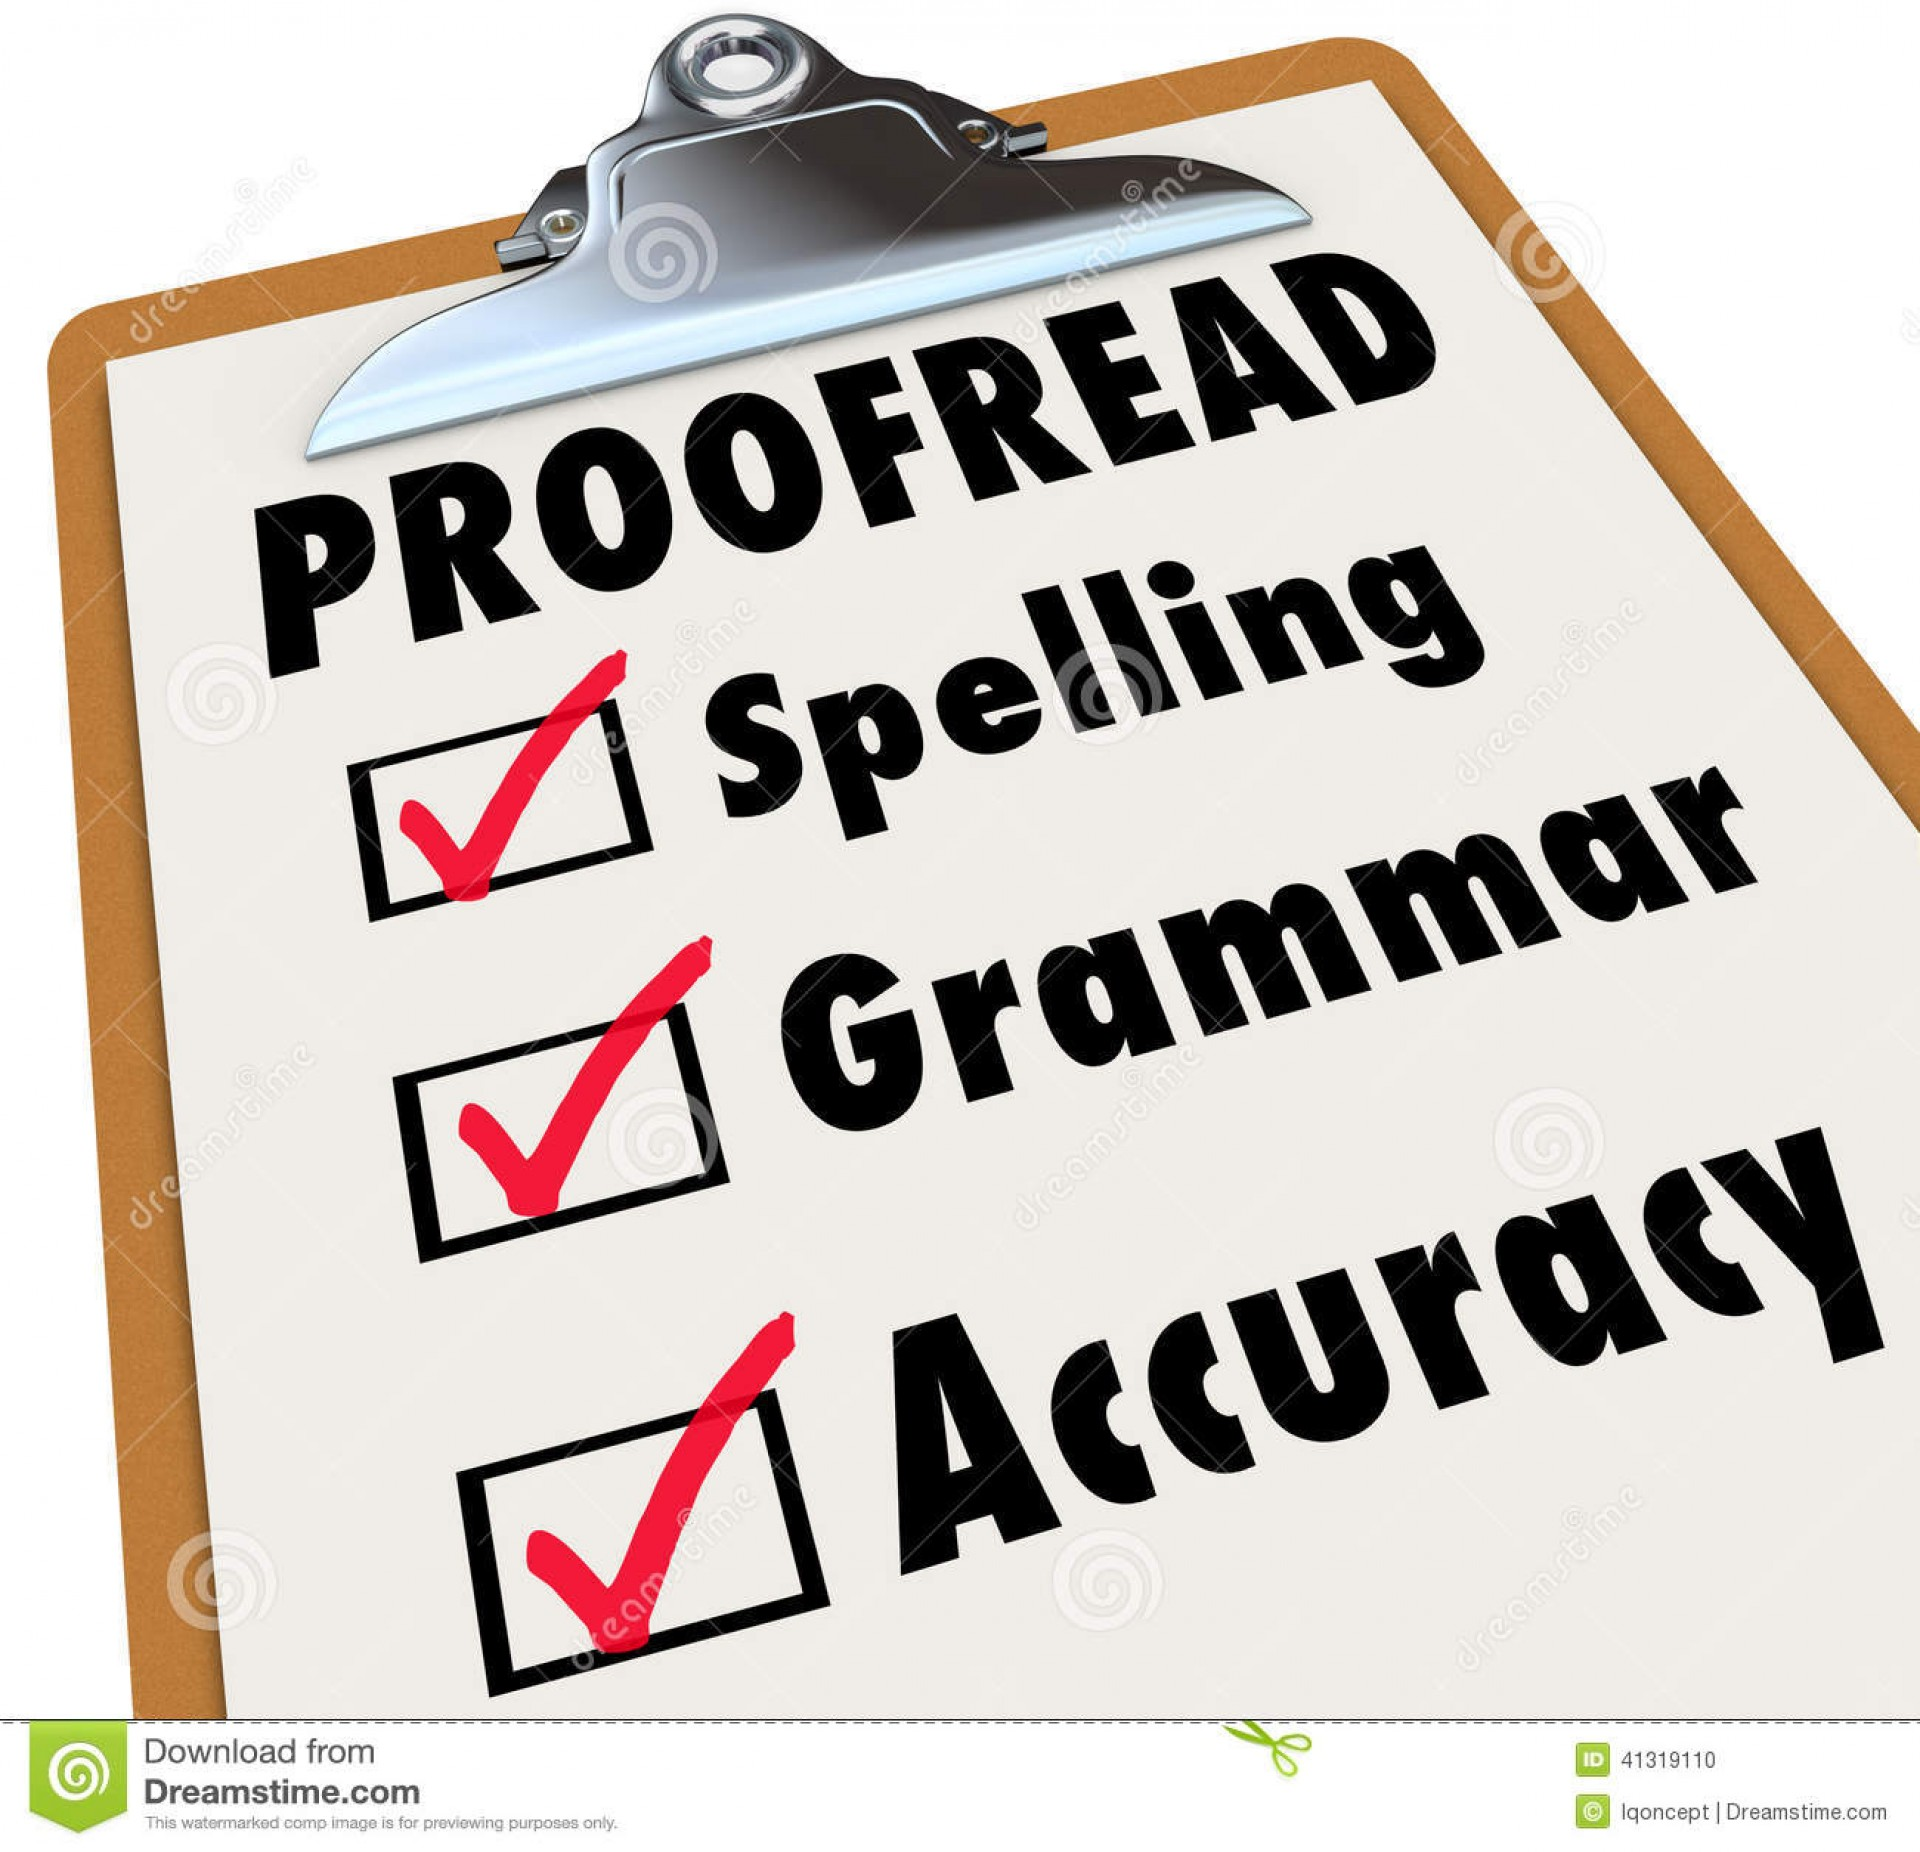 002 Proofread My Essay Example Clipboard Checklist Spelling Grammar Accuracy Checked Boxes Next To Words As Things Editor Reviews Remarkable Promo Code Online For Free 1920